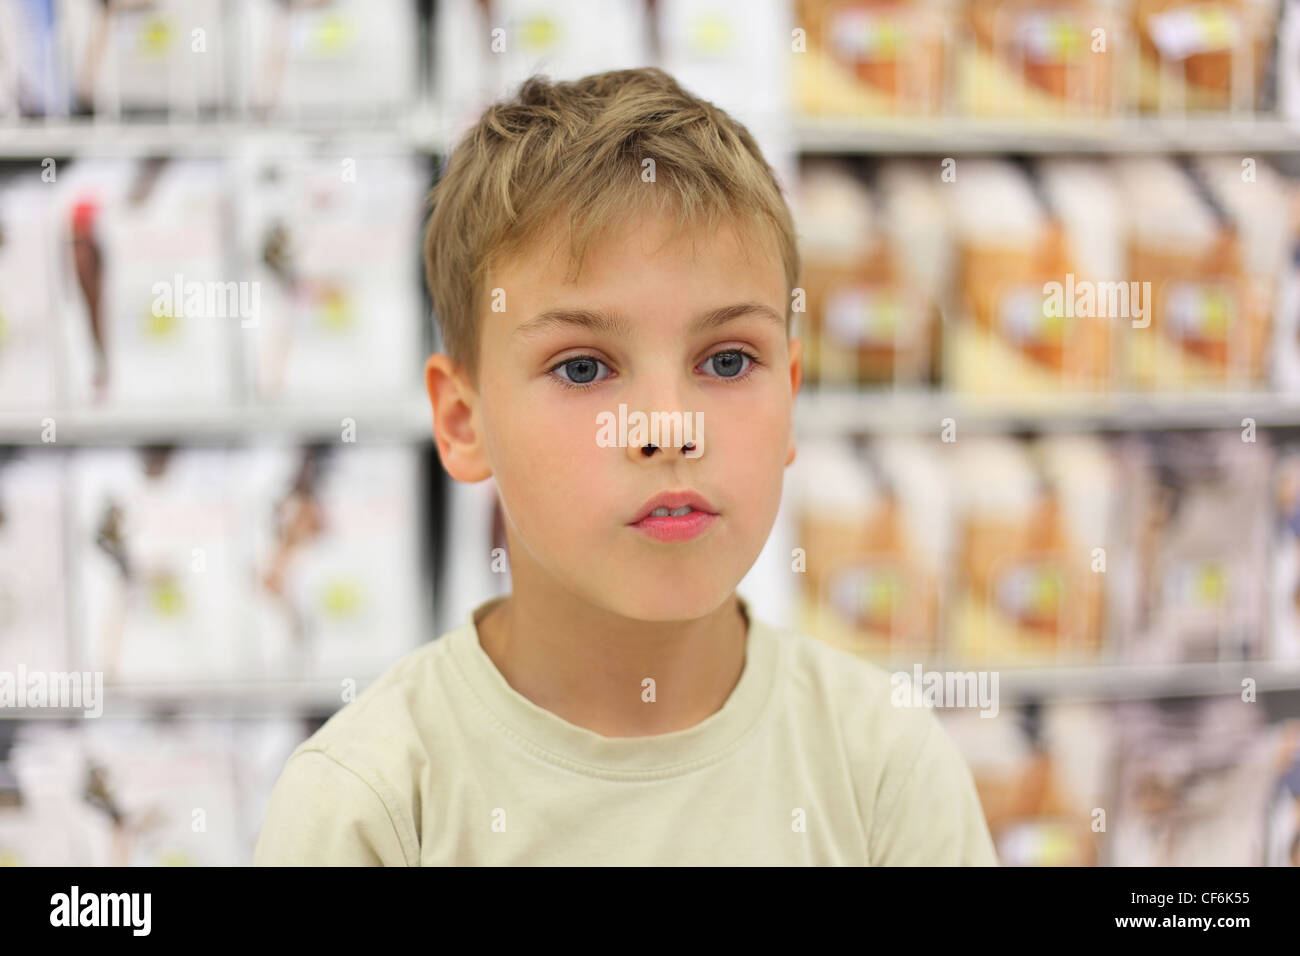 portrait of little caucasian boy looking at side, counter in store with commodity - Stock Image